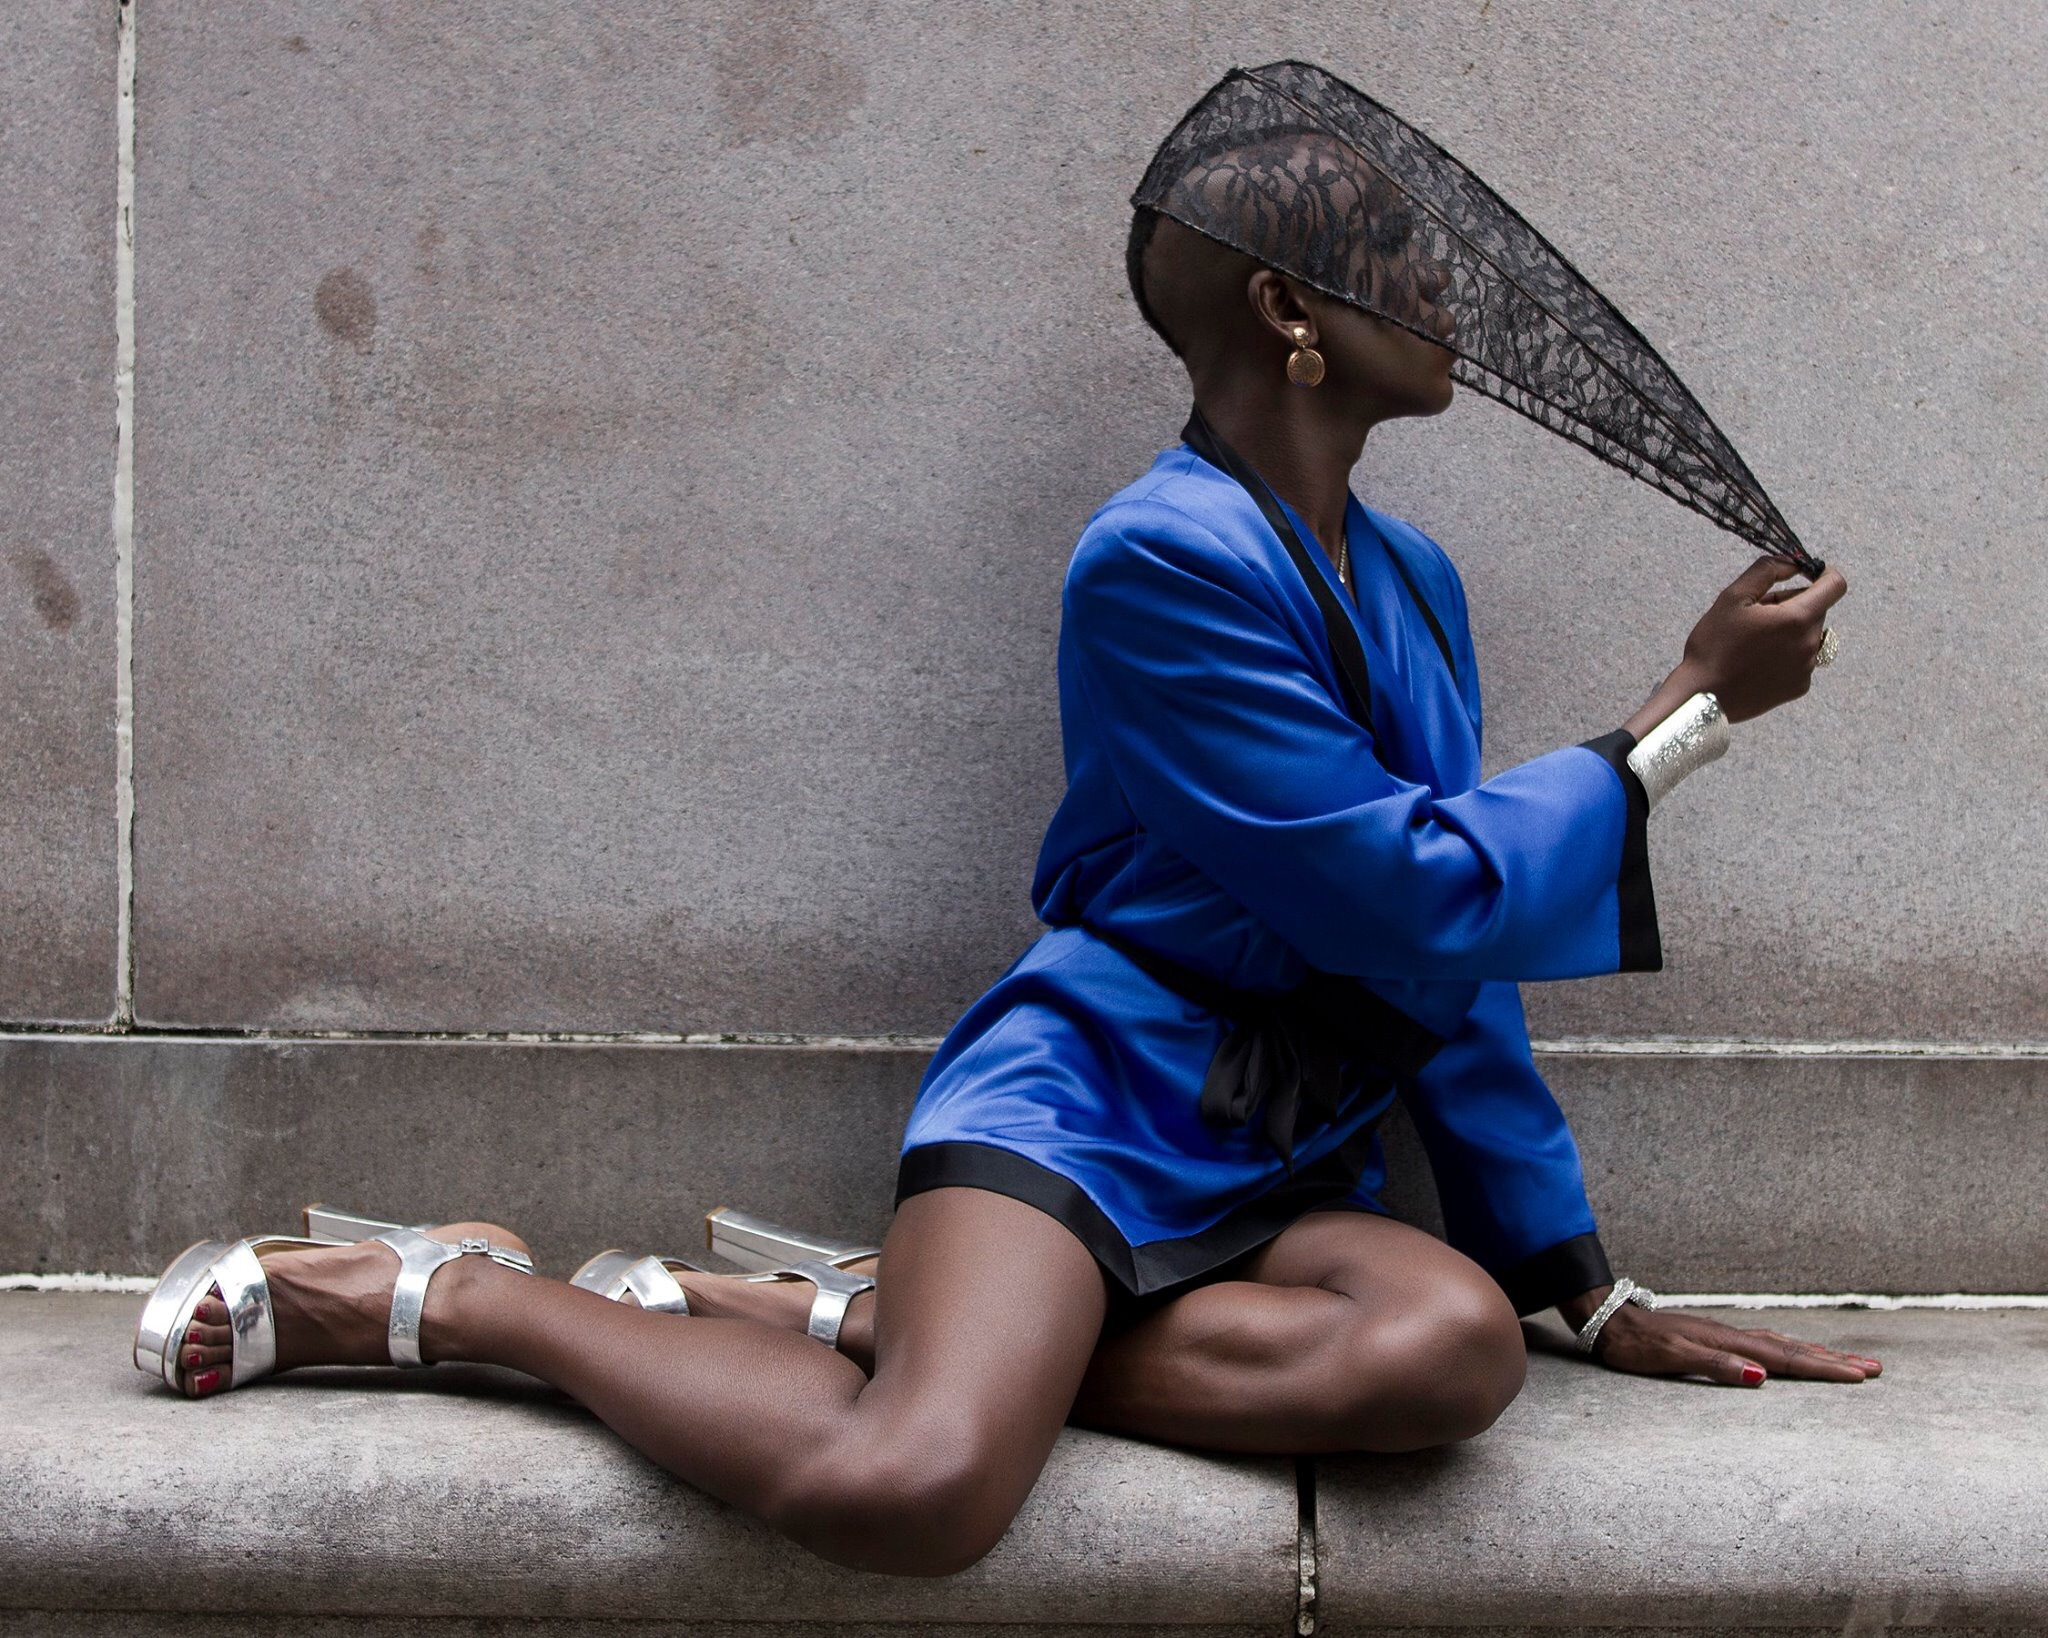 Jason Barnes (Pussy Noir). Photo by Robert DeCanio.